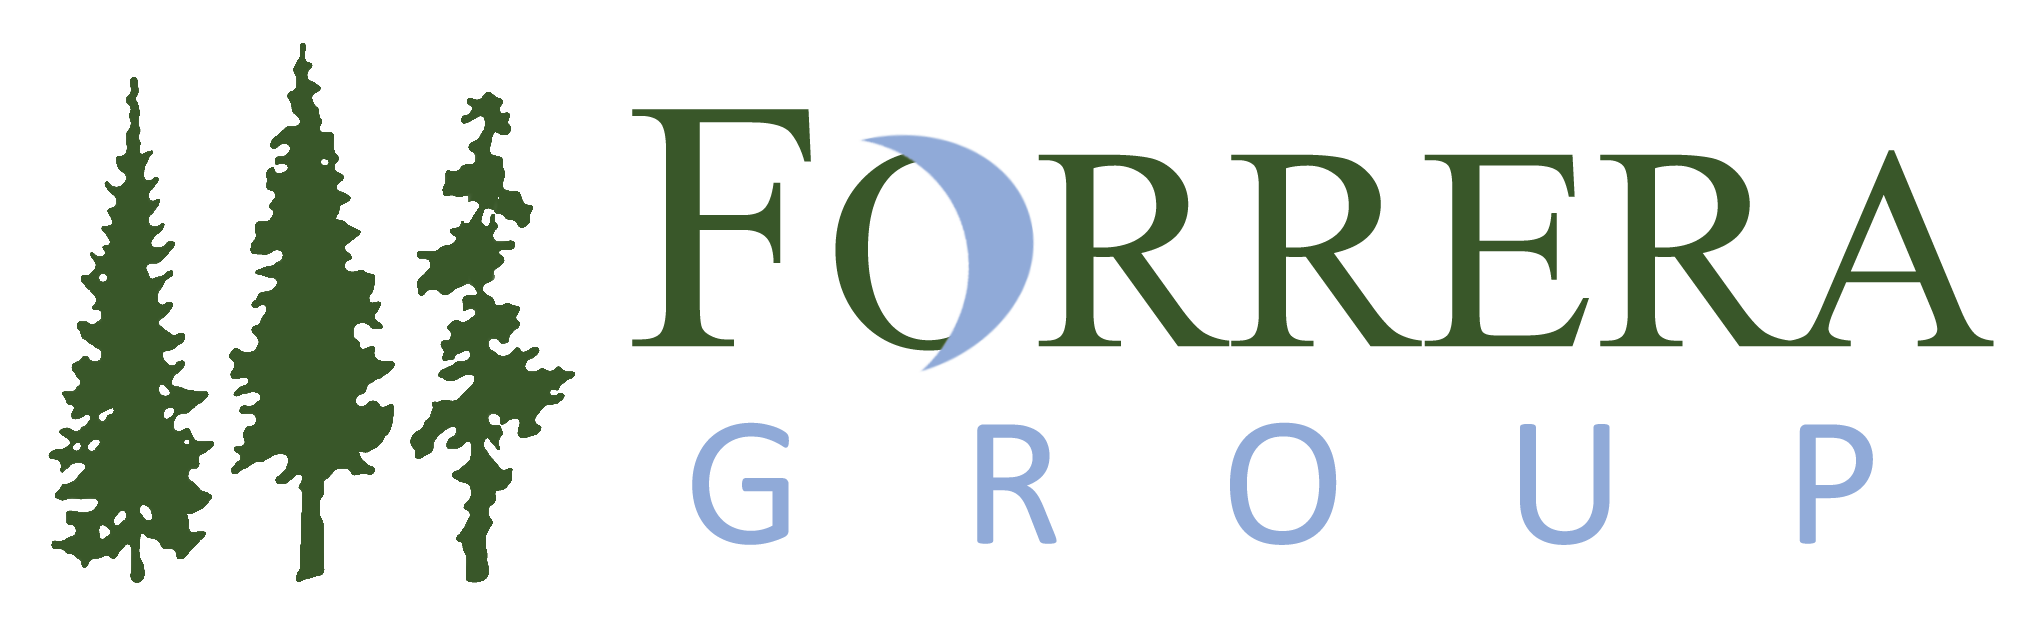 Forrera Group